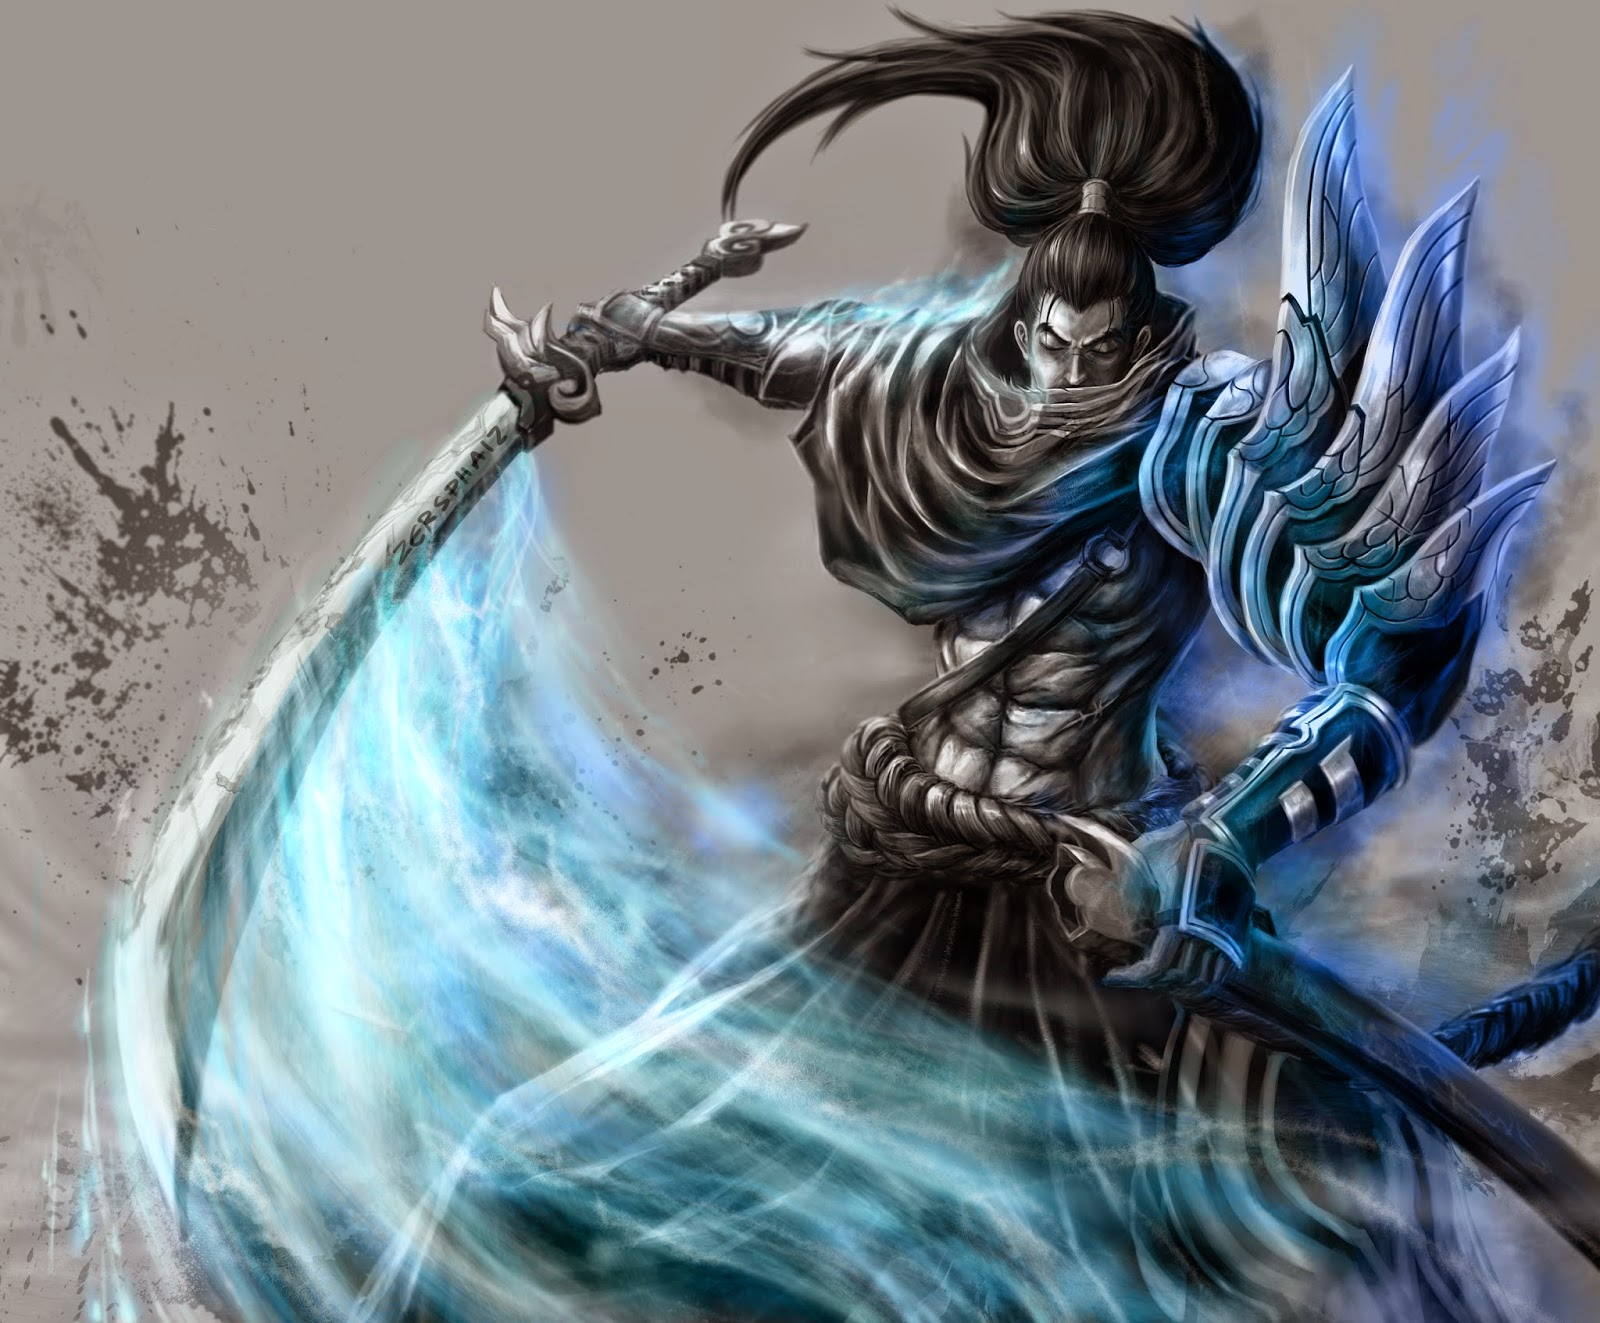 blogspotcom201404Yasuo League of Legends Wallpaper full HDhtml 1600x1323